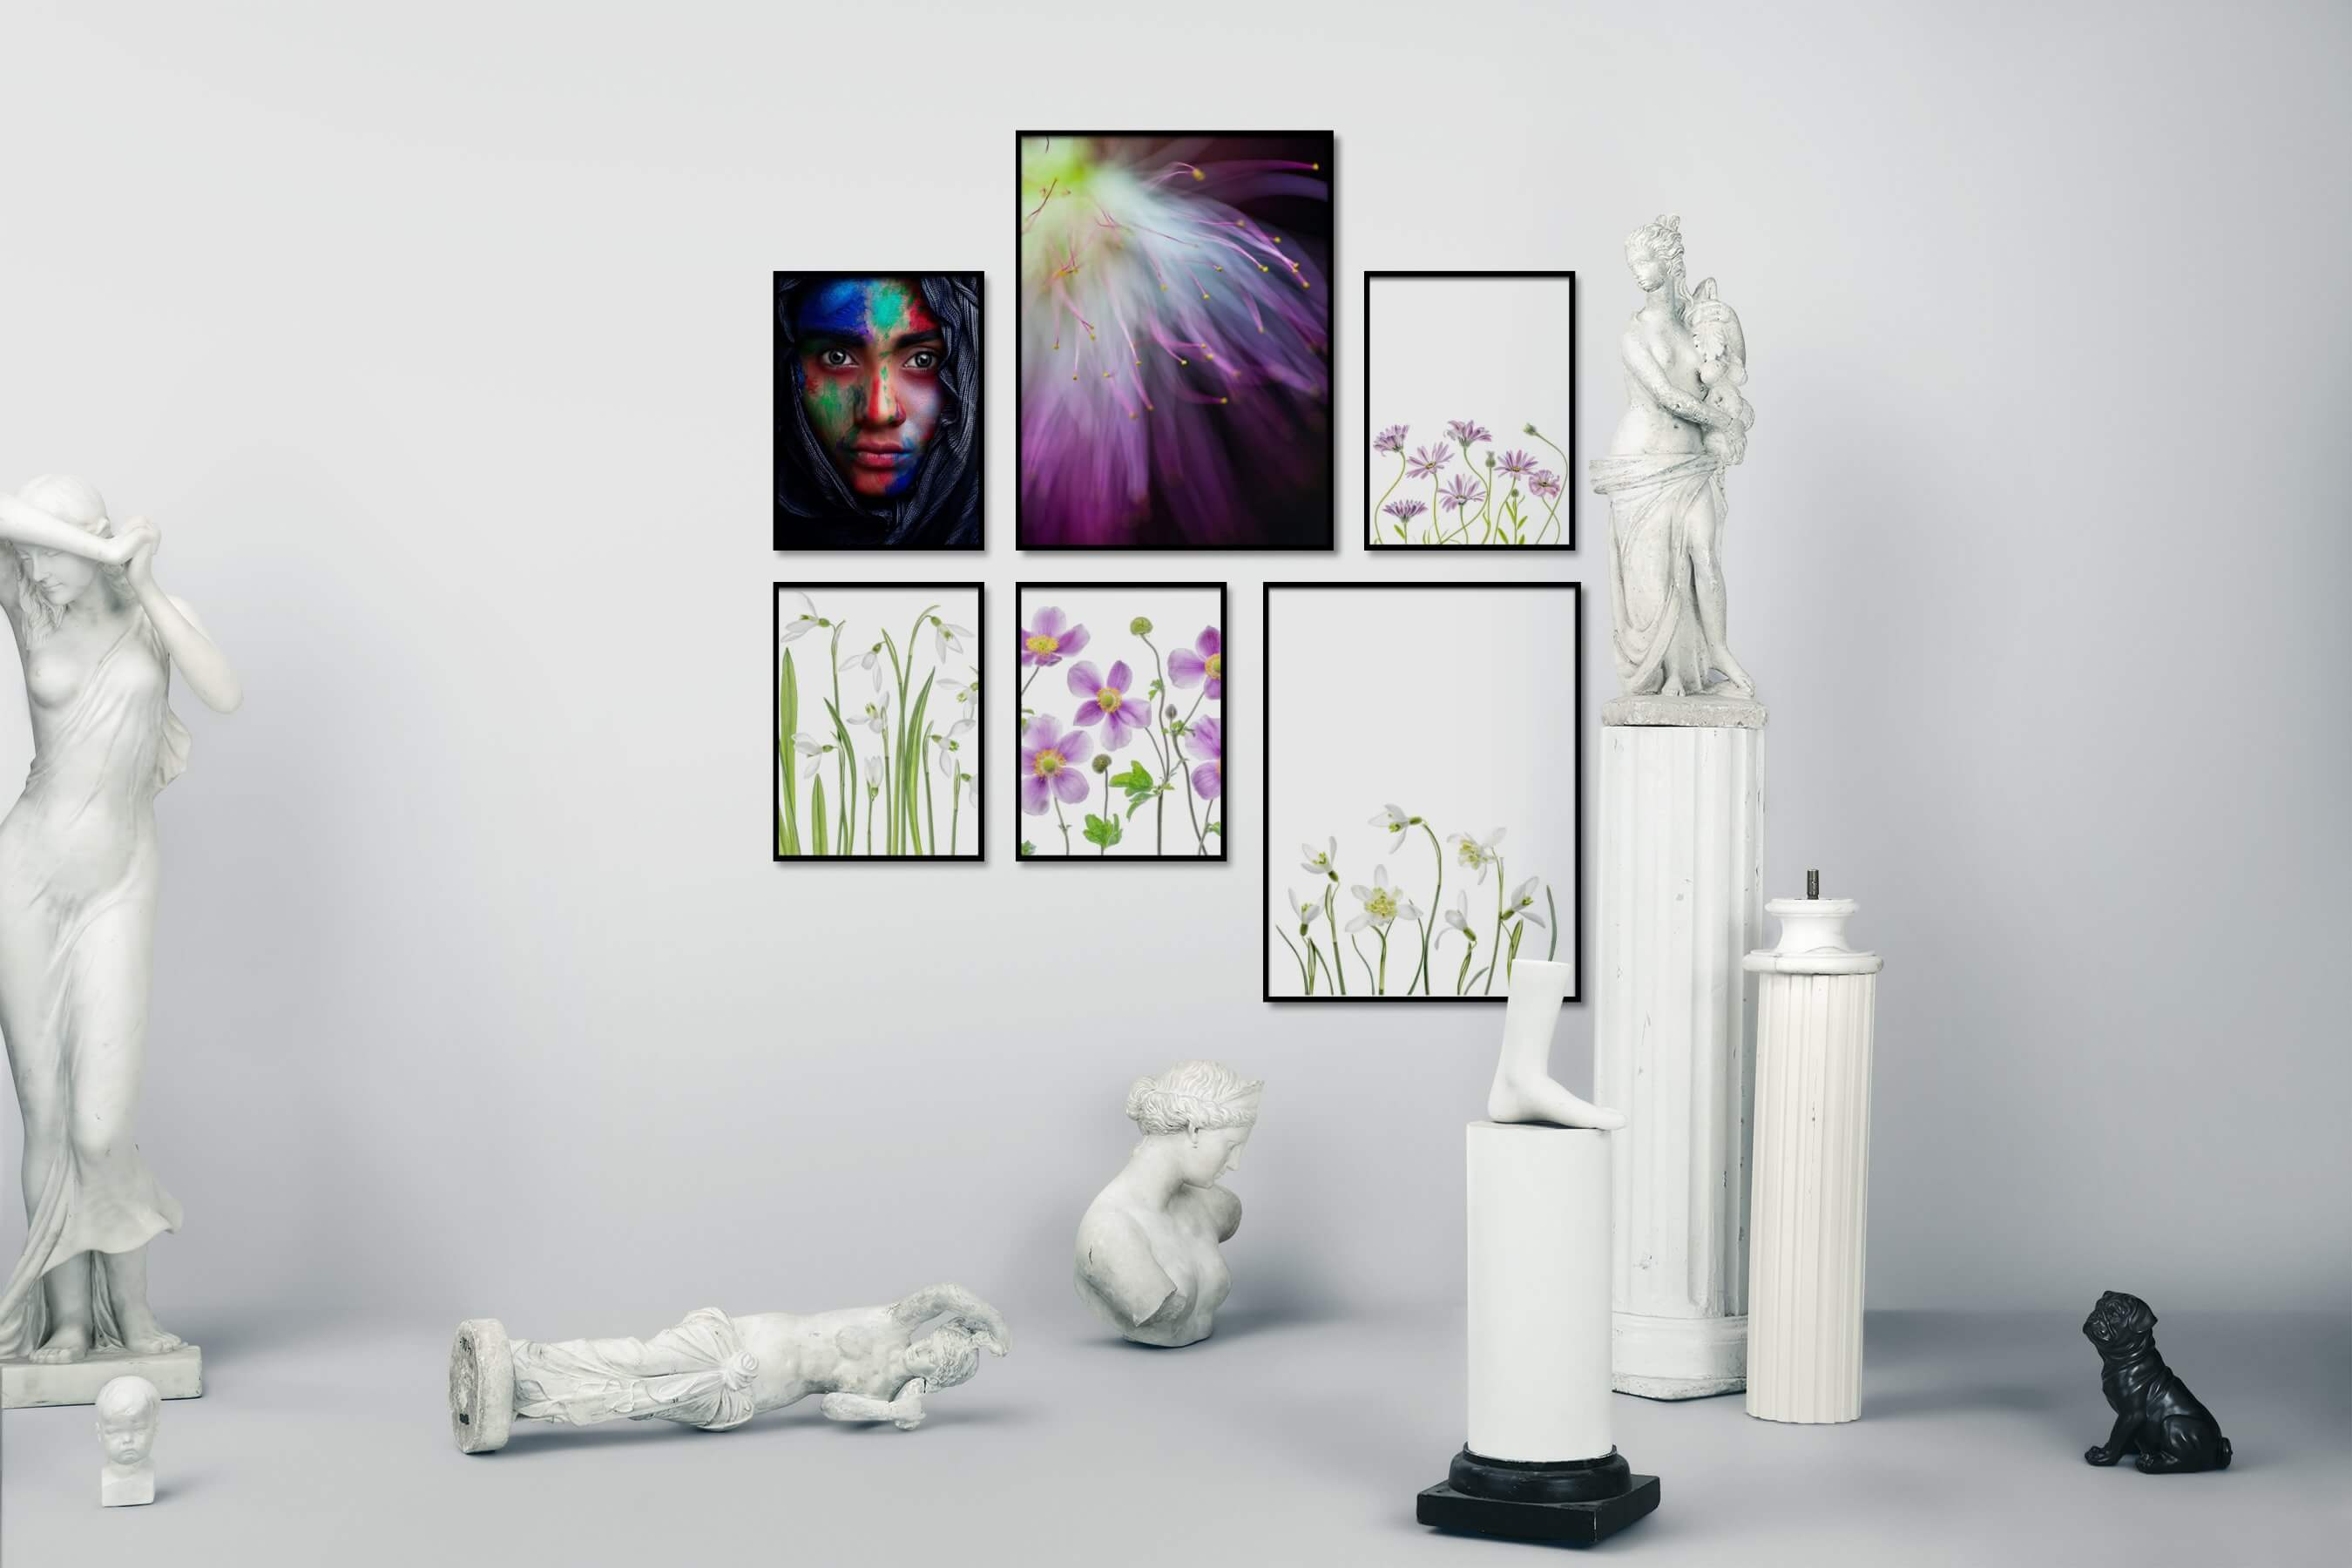 Gallery wall idea with six framed pictures arranged on a wall depicting Fashion & Beauty, For the Moderate, Flowers & Plants, Bright Tones, and For the Minimalist